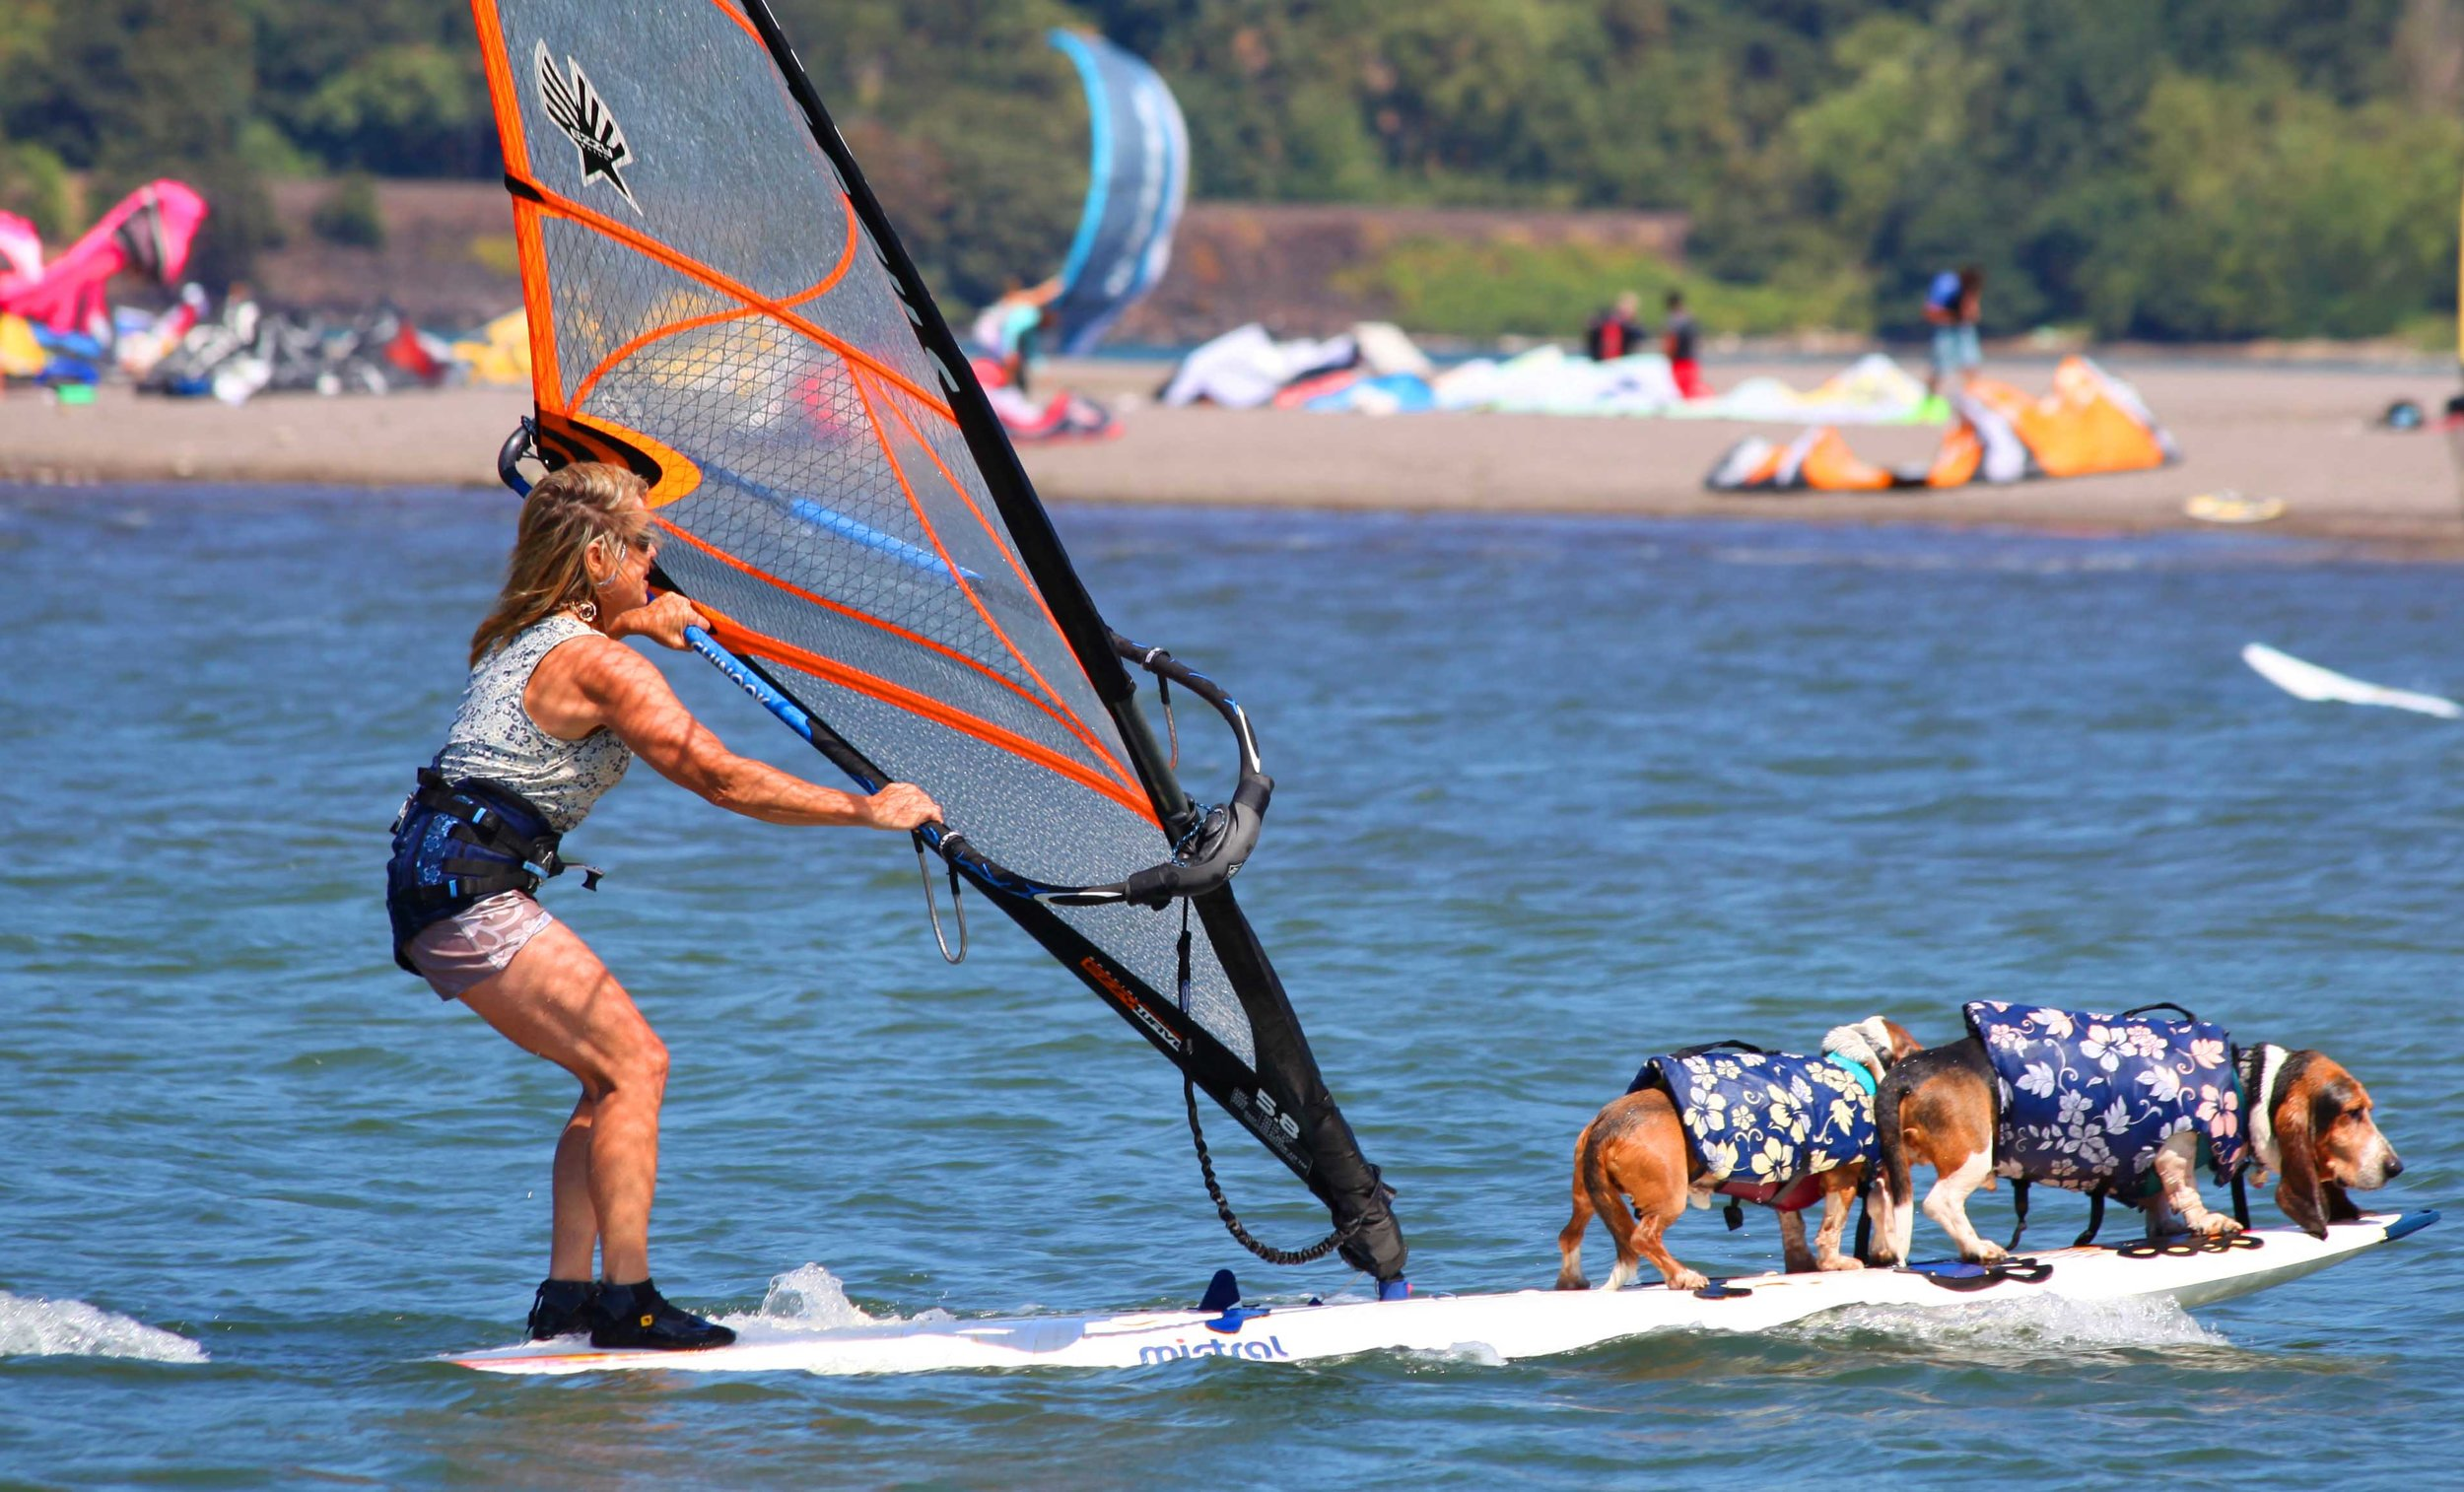 Elvis and Dude and I, windsurfing Gorge summers. RIP old boys.                                                  Photo: (c) Barb Ayers, DogDiary.org